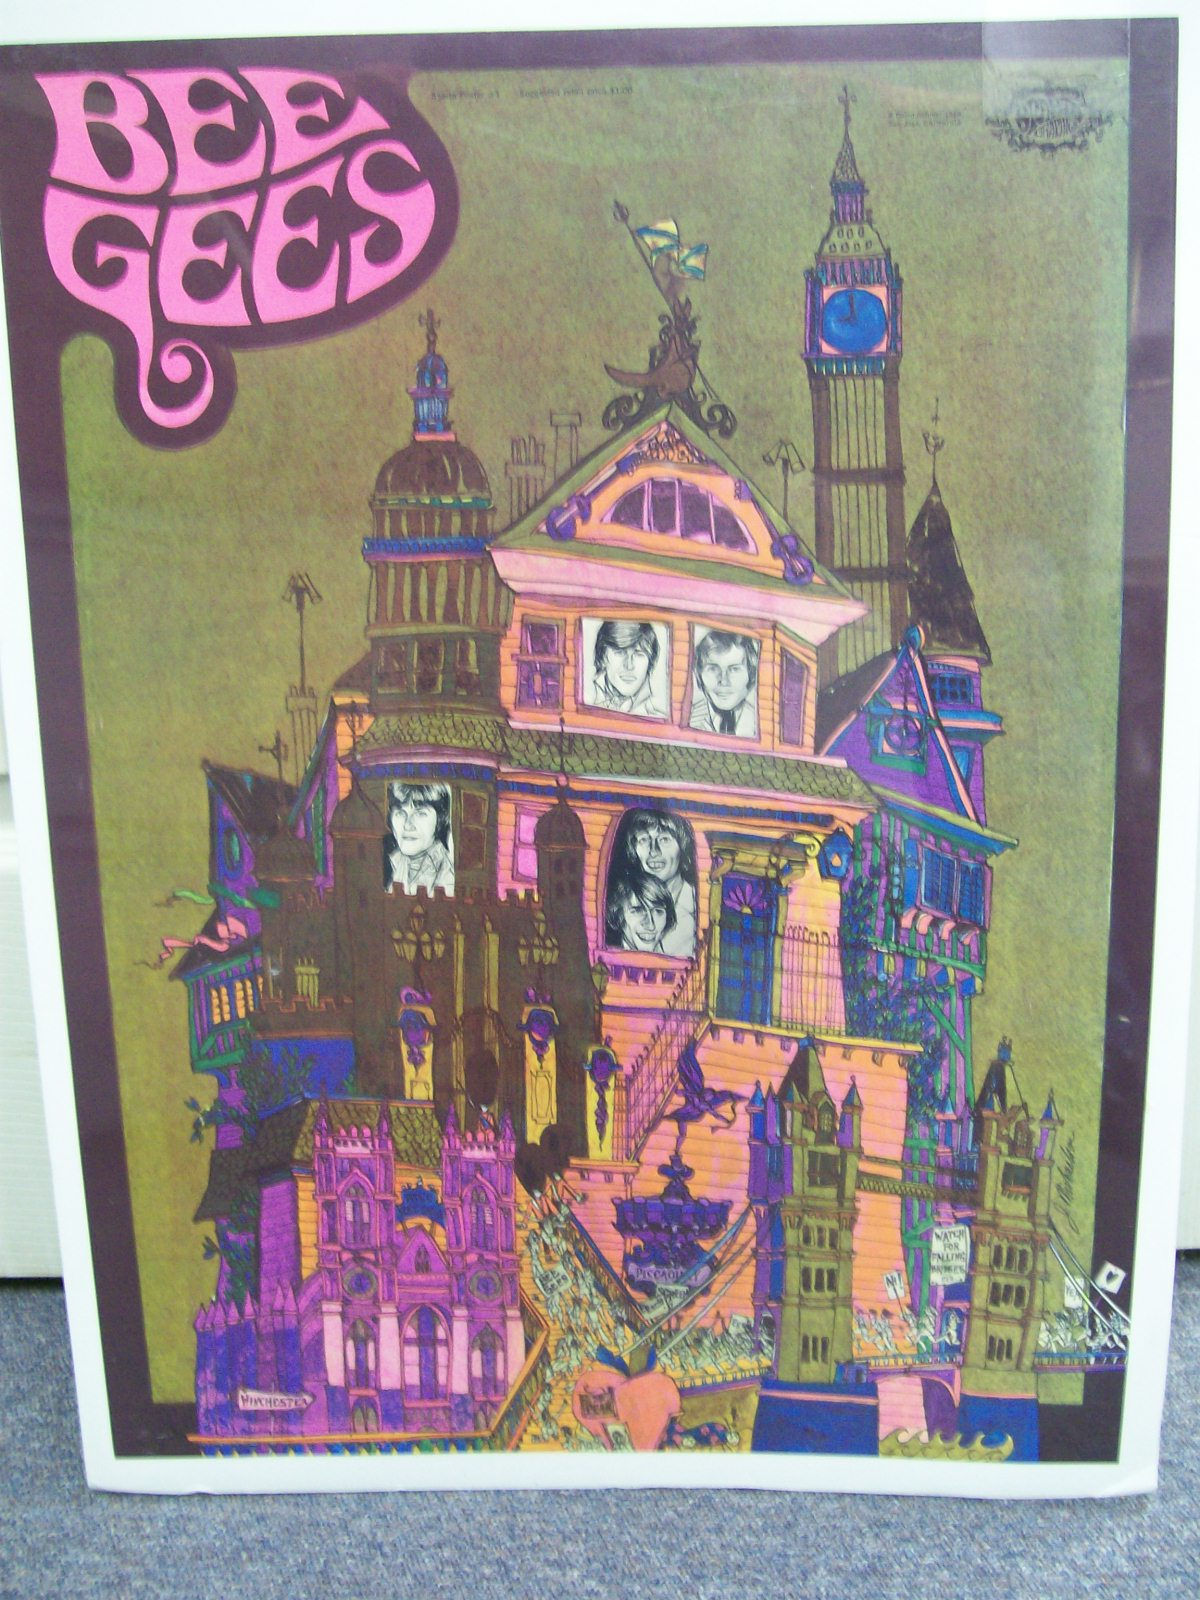 BEEGEES SPARTA POSTER #3 DAVID SHILLER 1968 CAL.